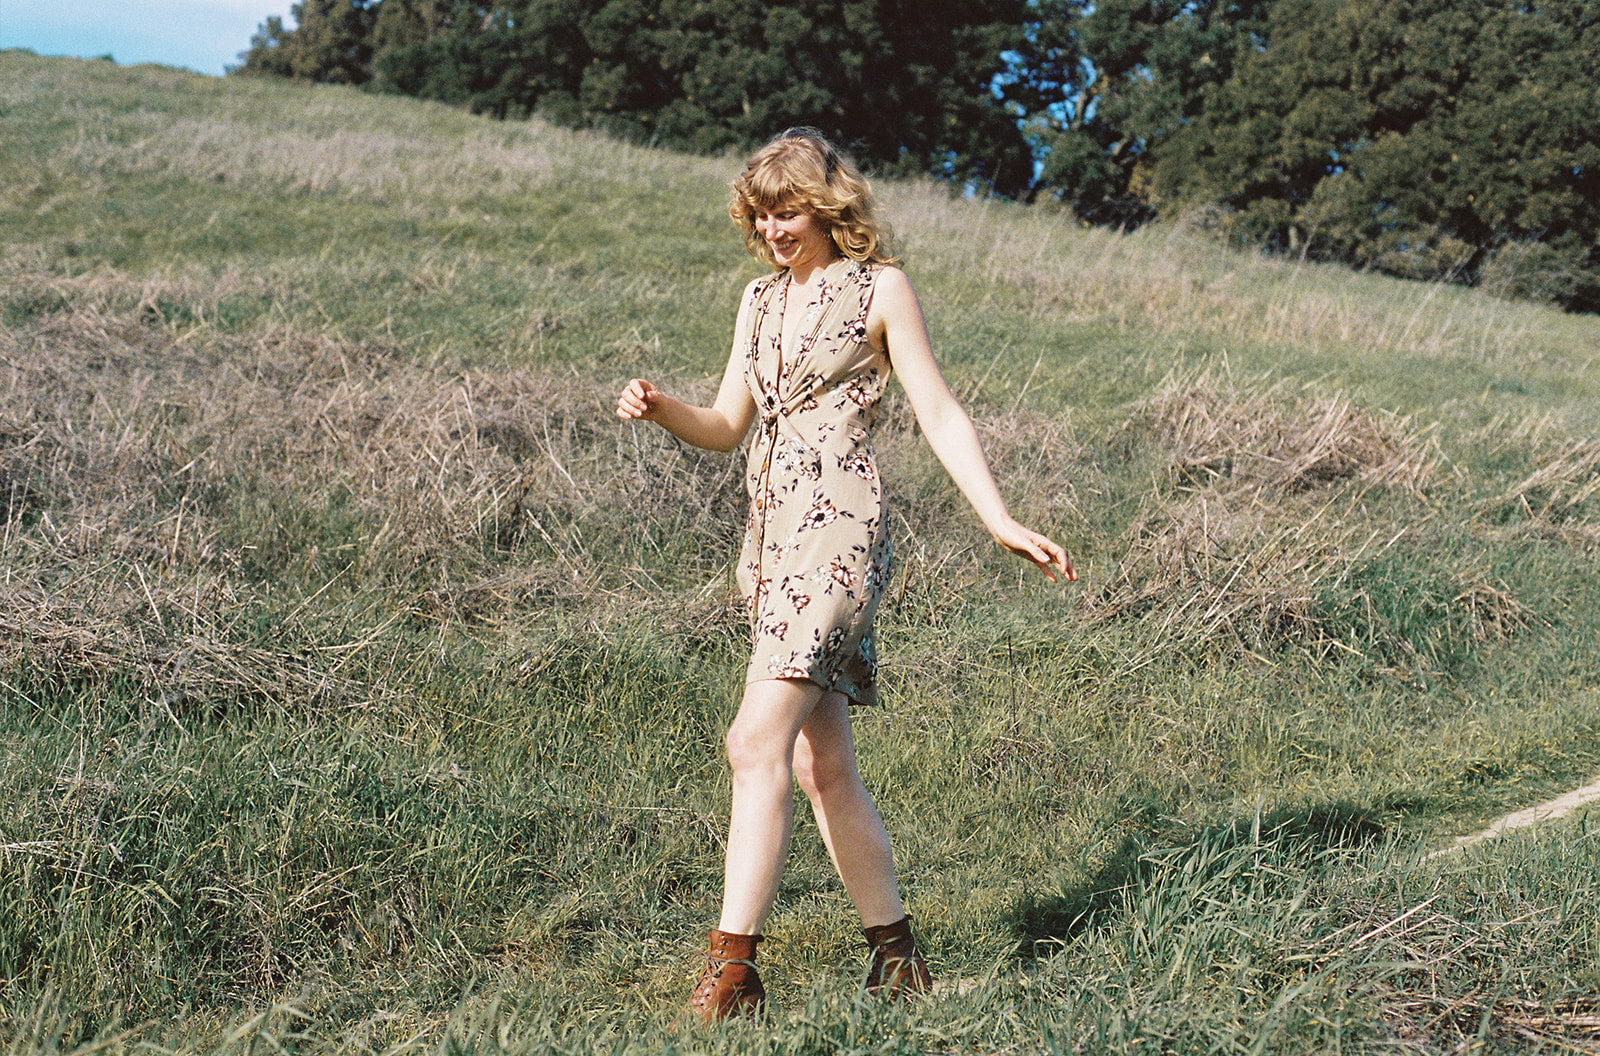 woman in tan floral dress skipping